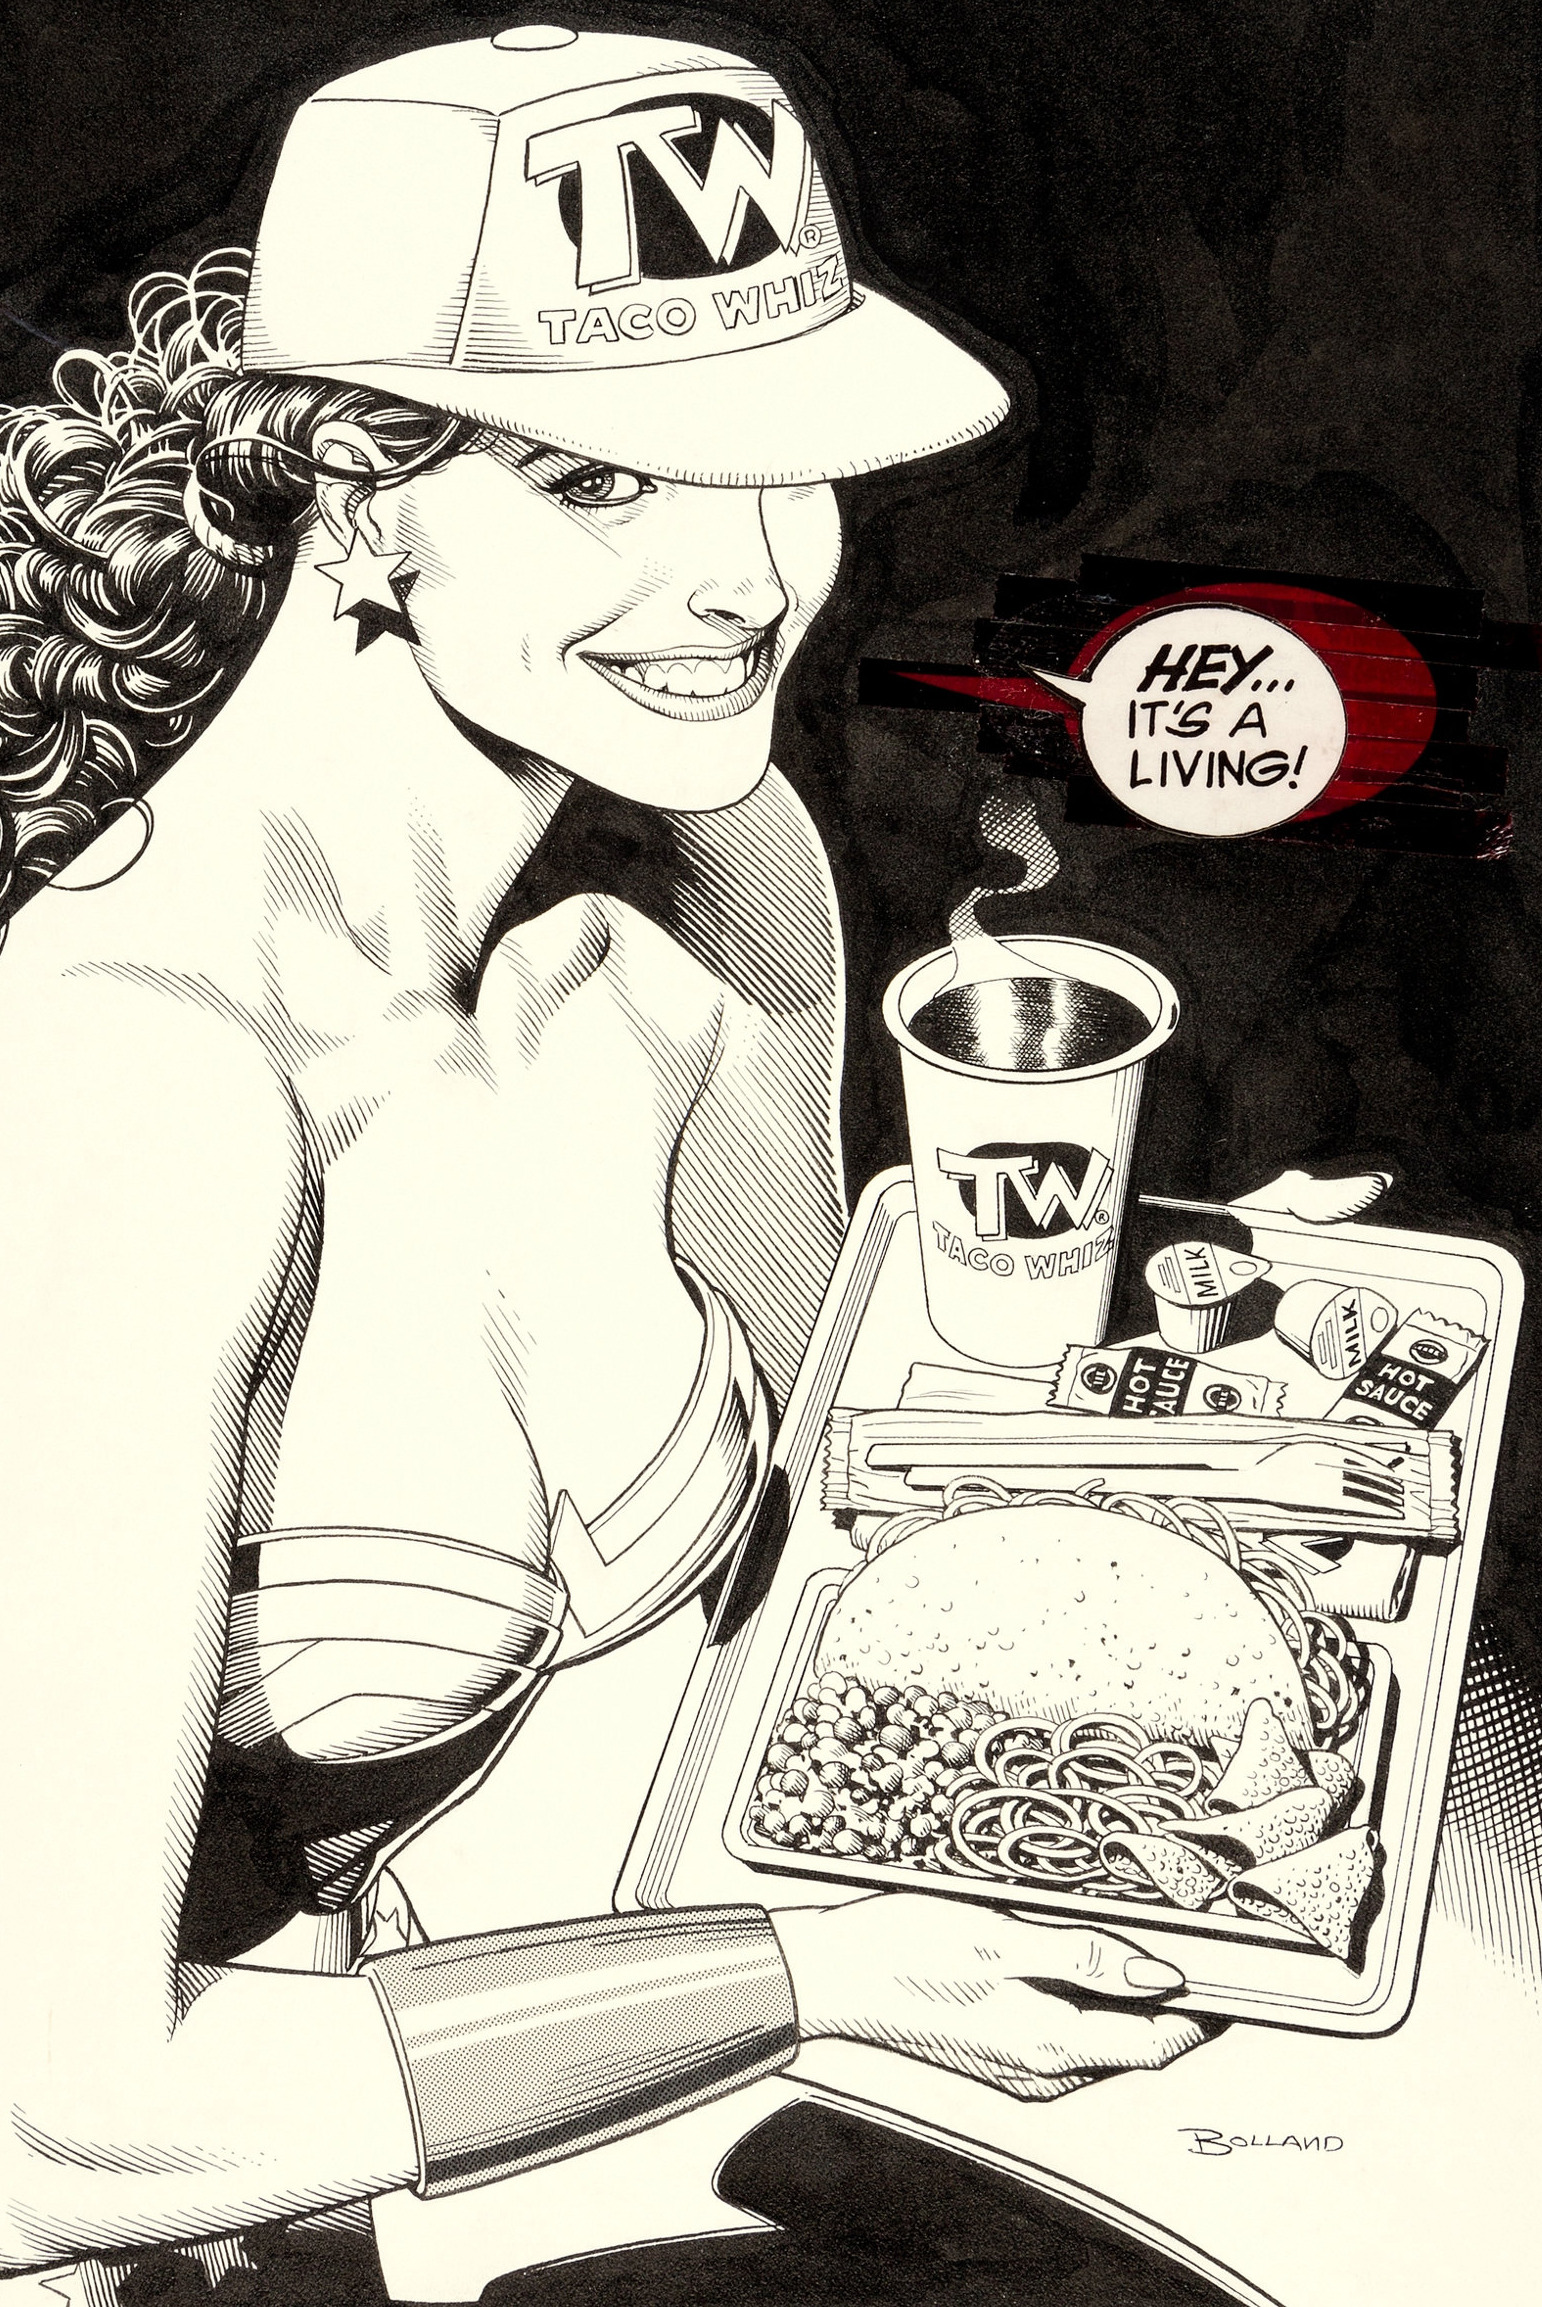 Original cover art by Brian Bolland from Wonder Woman #73, 1993